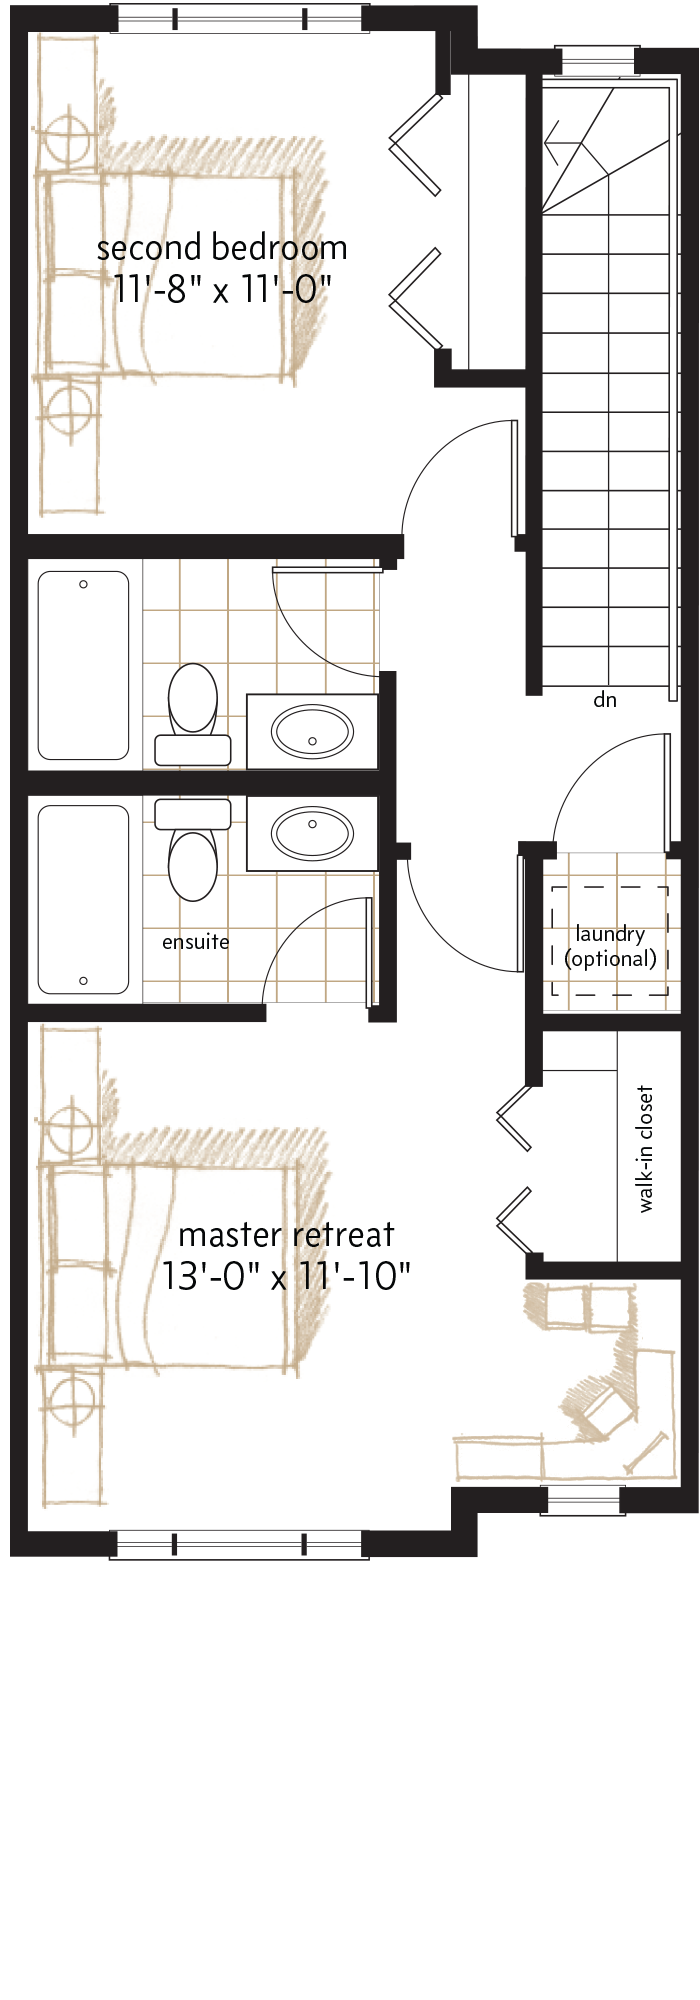 UPPER LEVEL  |  566 SQ. FT.